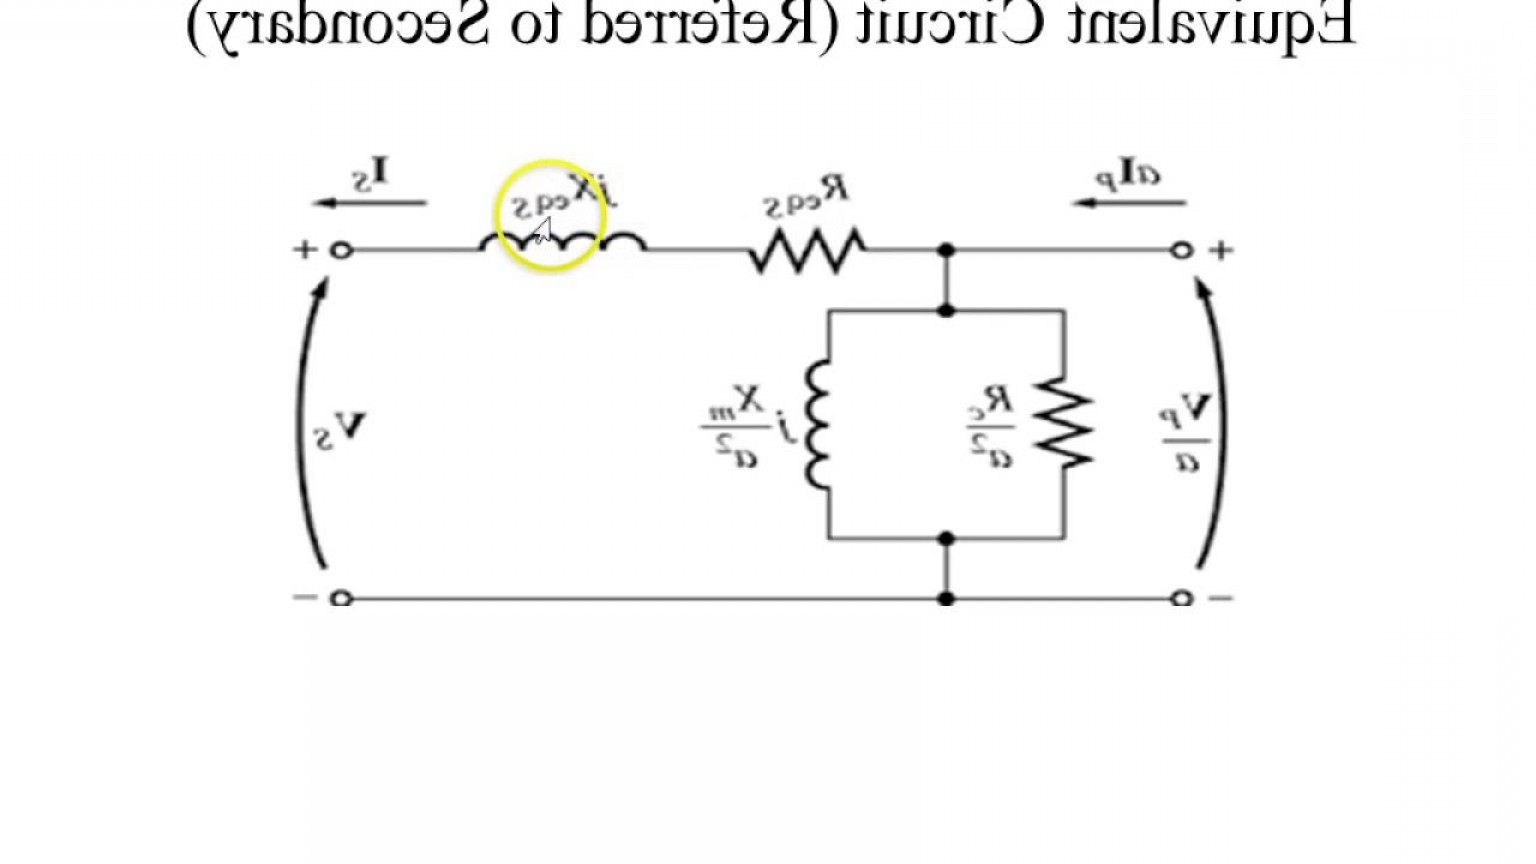 Transformer Vector Diagrams: Phasor Diagram And Equivalent Circuit Of A Single Phase Transformers